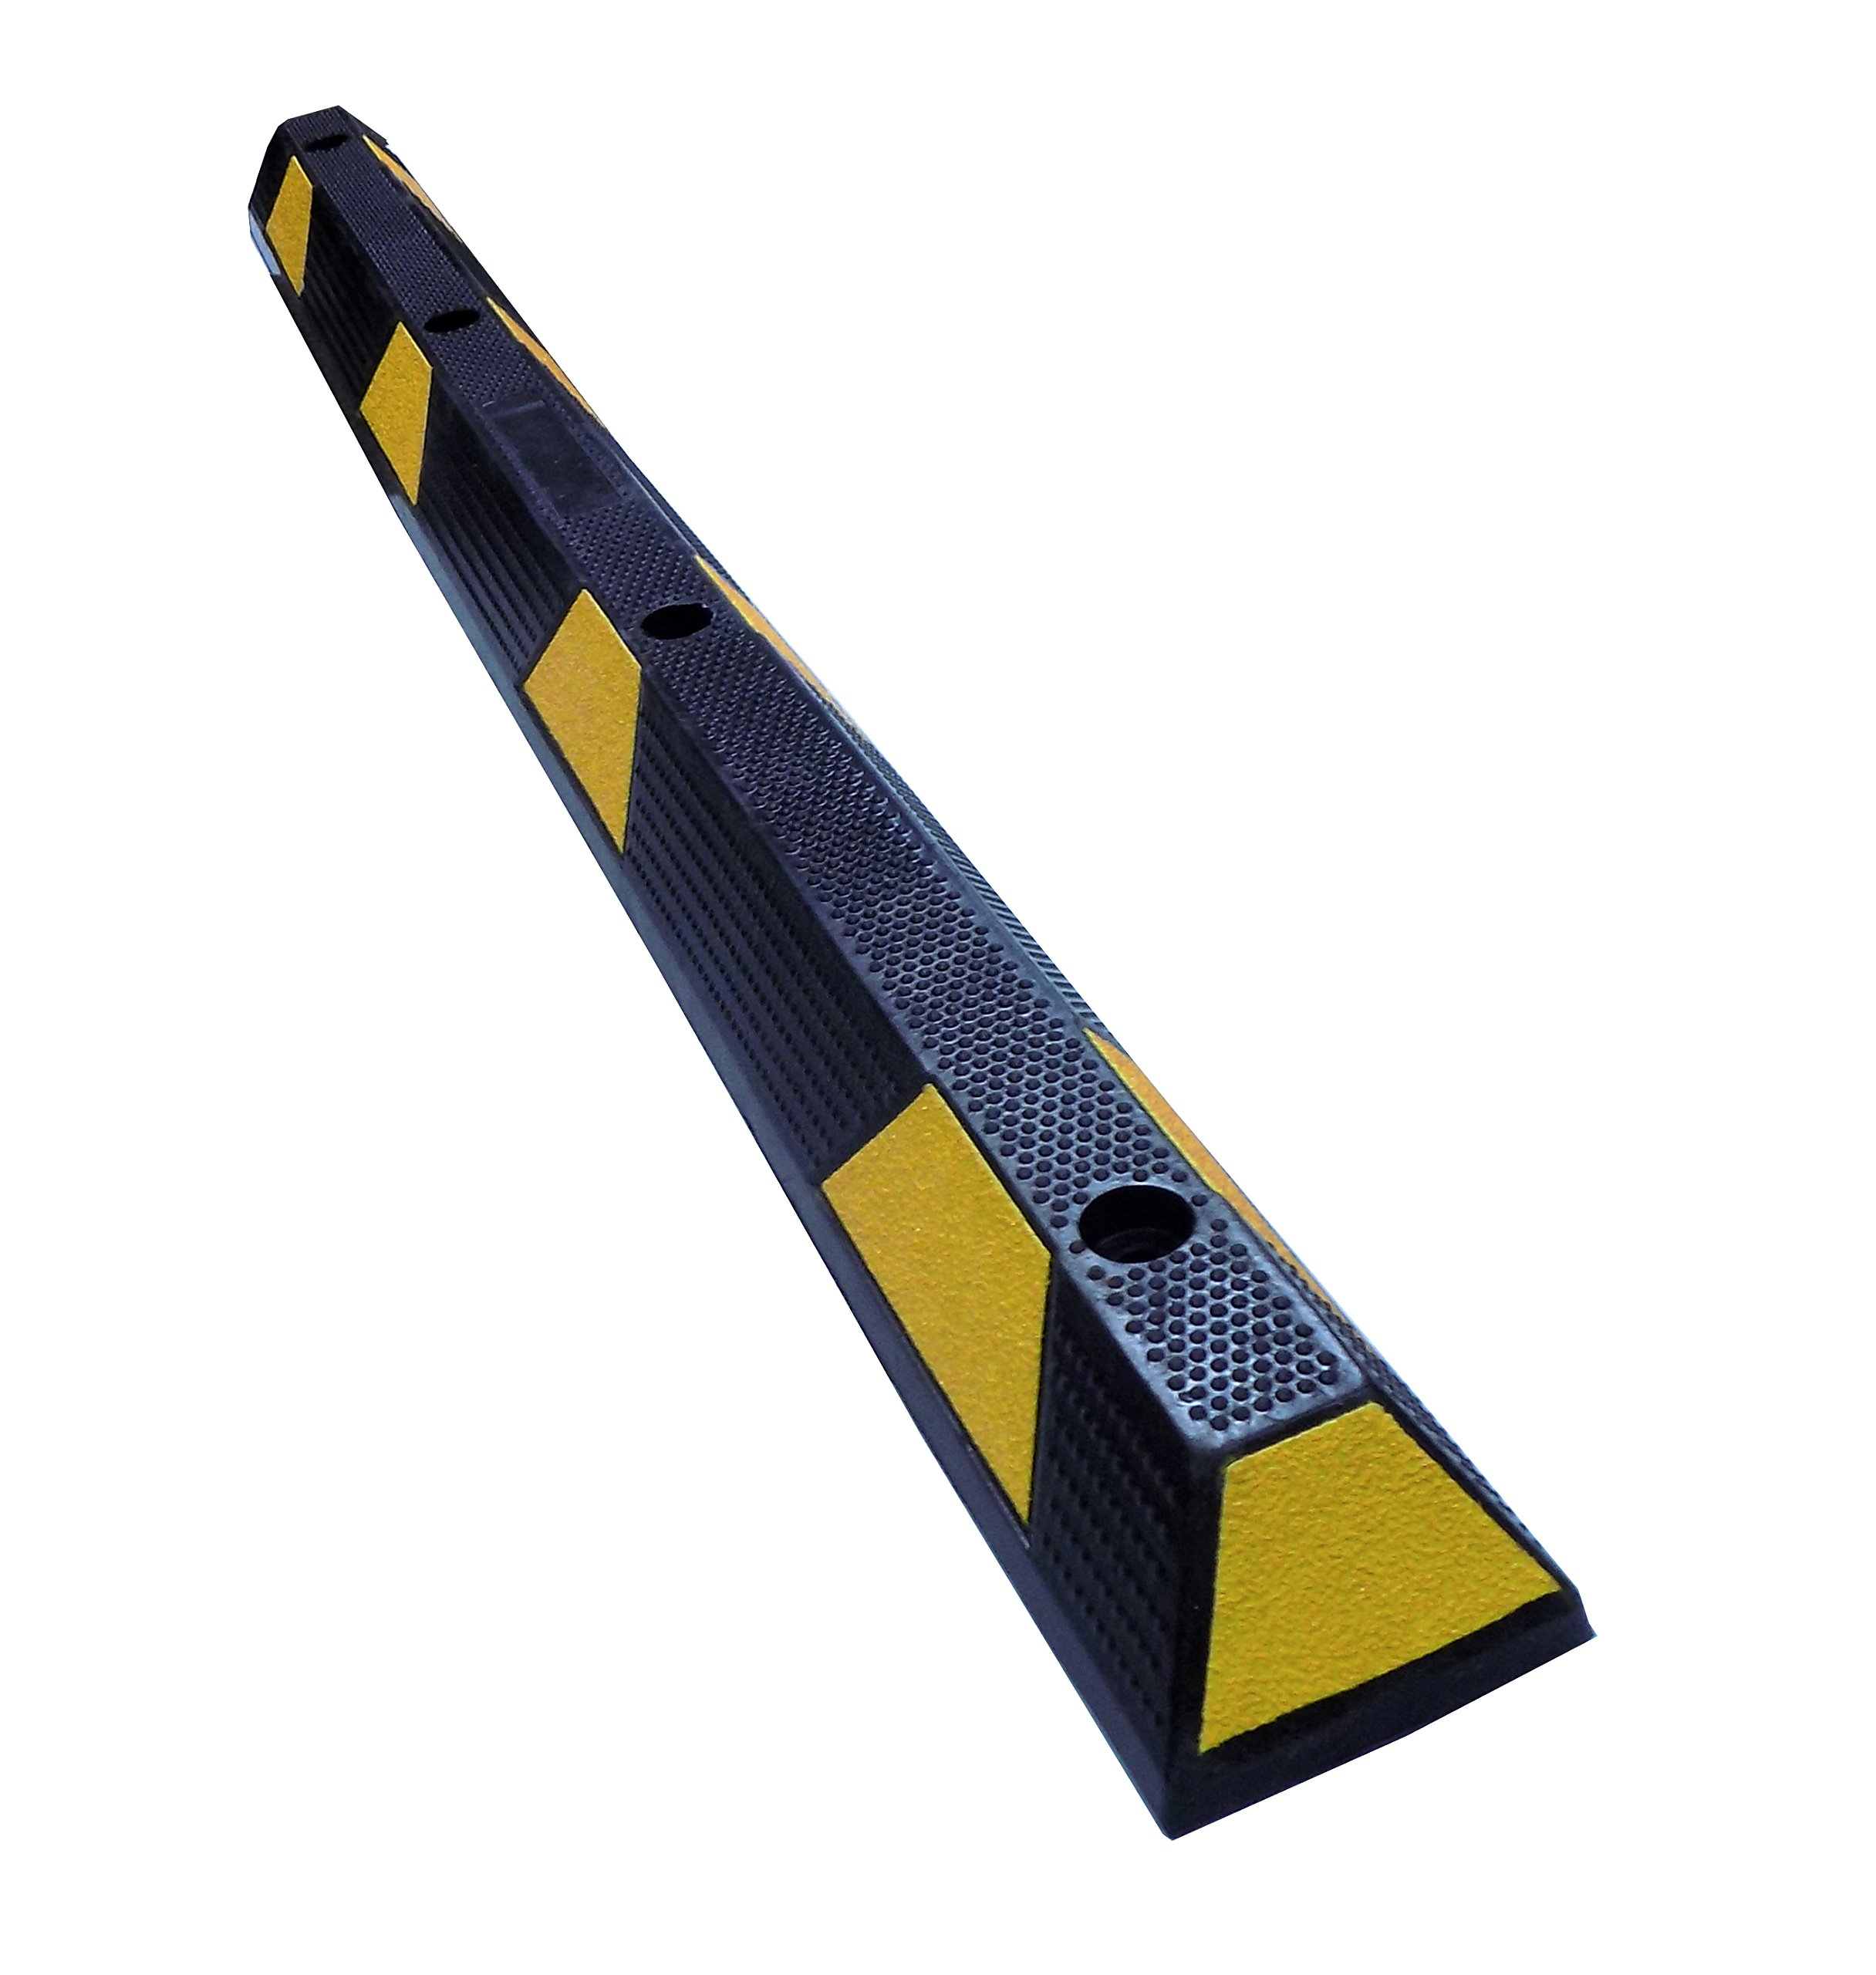 Electriduct 72'' Heavy Duty Rubber Parking Block Curb 3.75'' Height - Black/Yellow Stripe by Electriduct (Image #1)